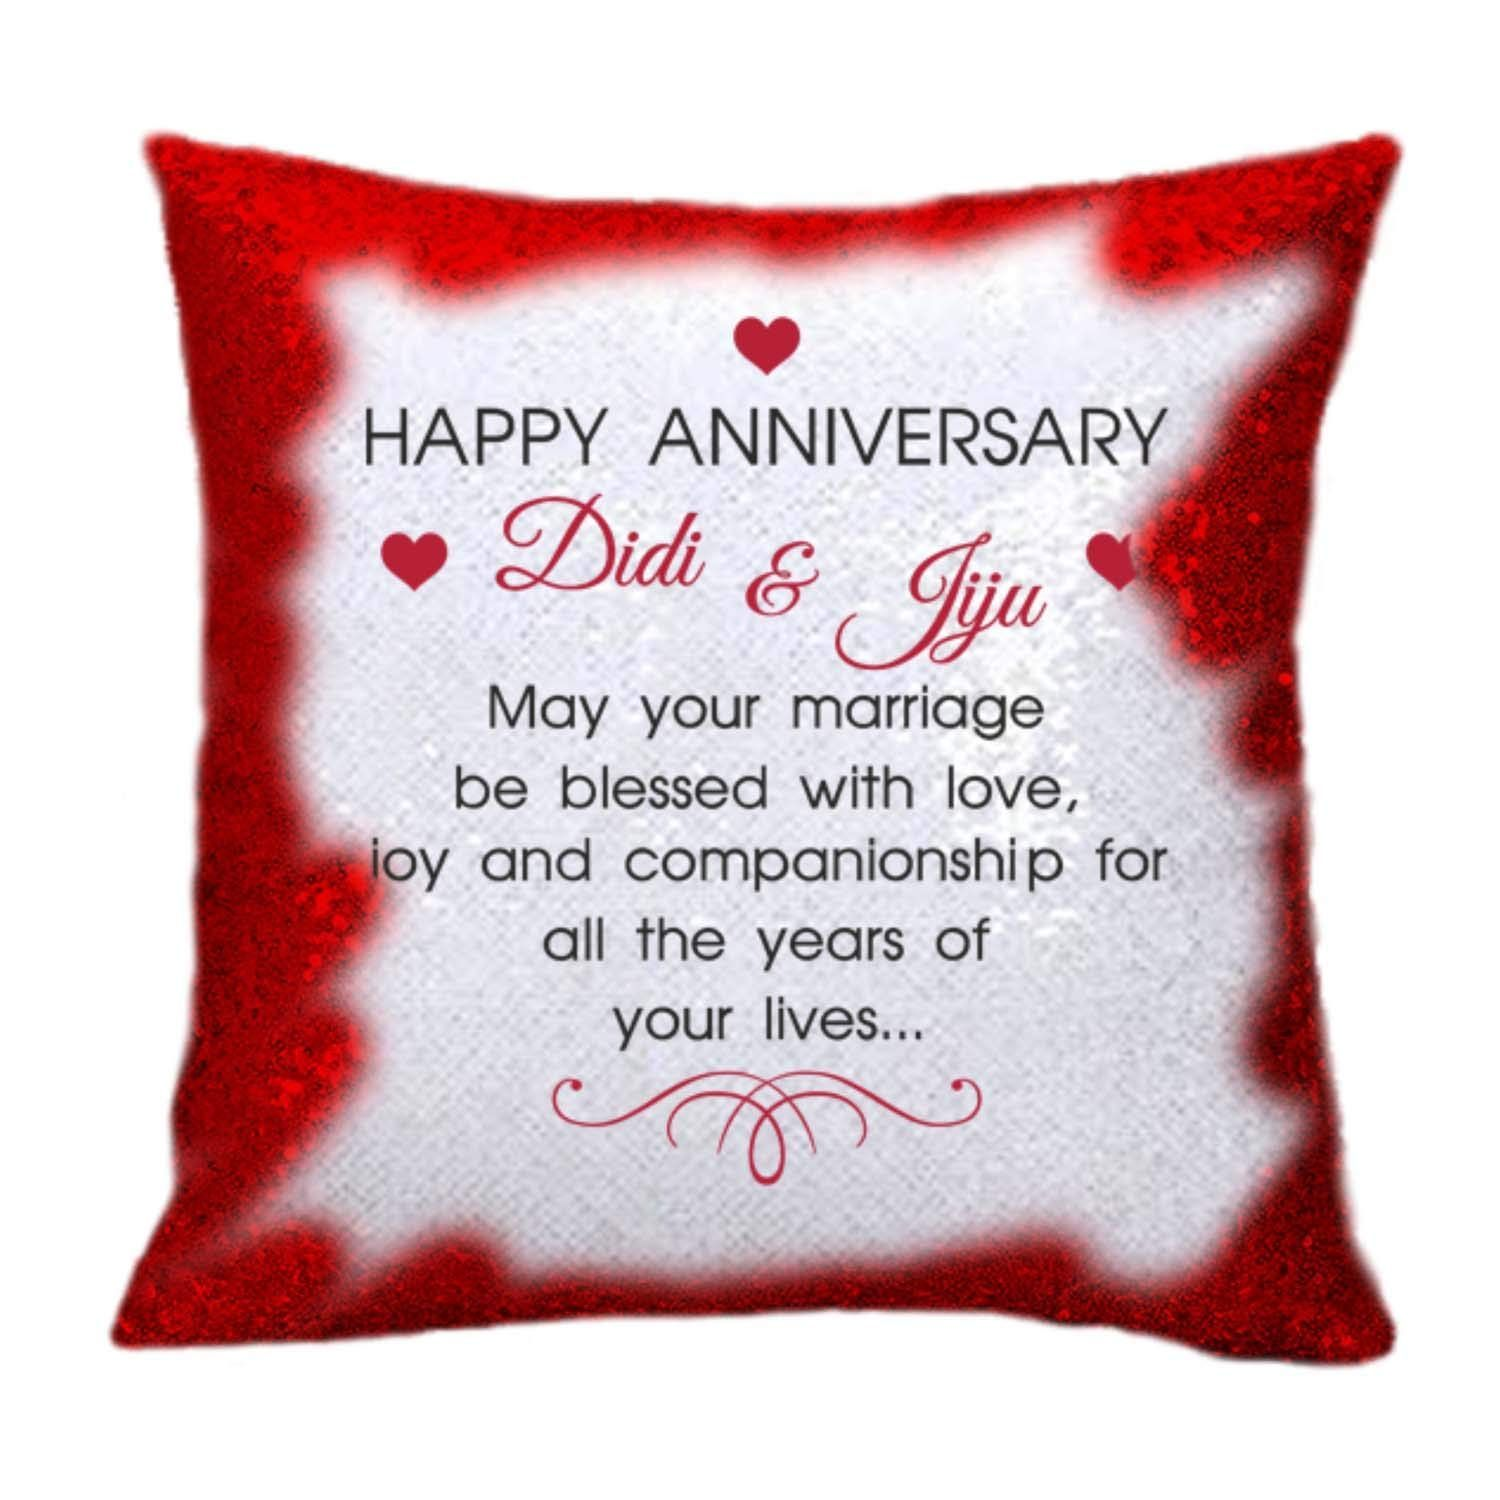 9 Awesome Anniversary Card For Di And Jiju In 2021 Anniversary Wishes For Sister Happy Marriage Anniversary Wedding Anniversary Wishes